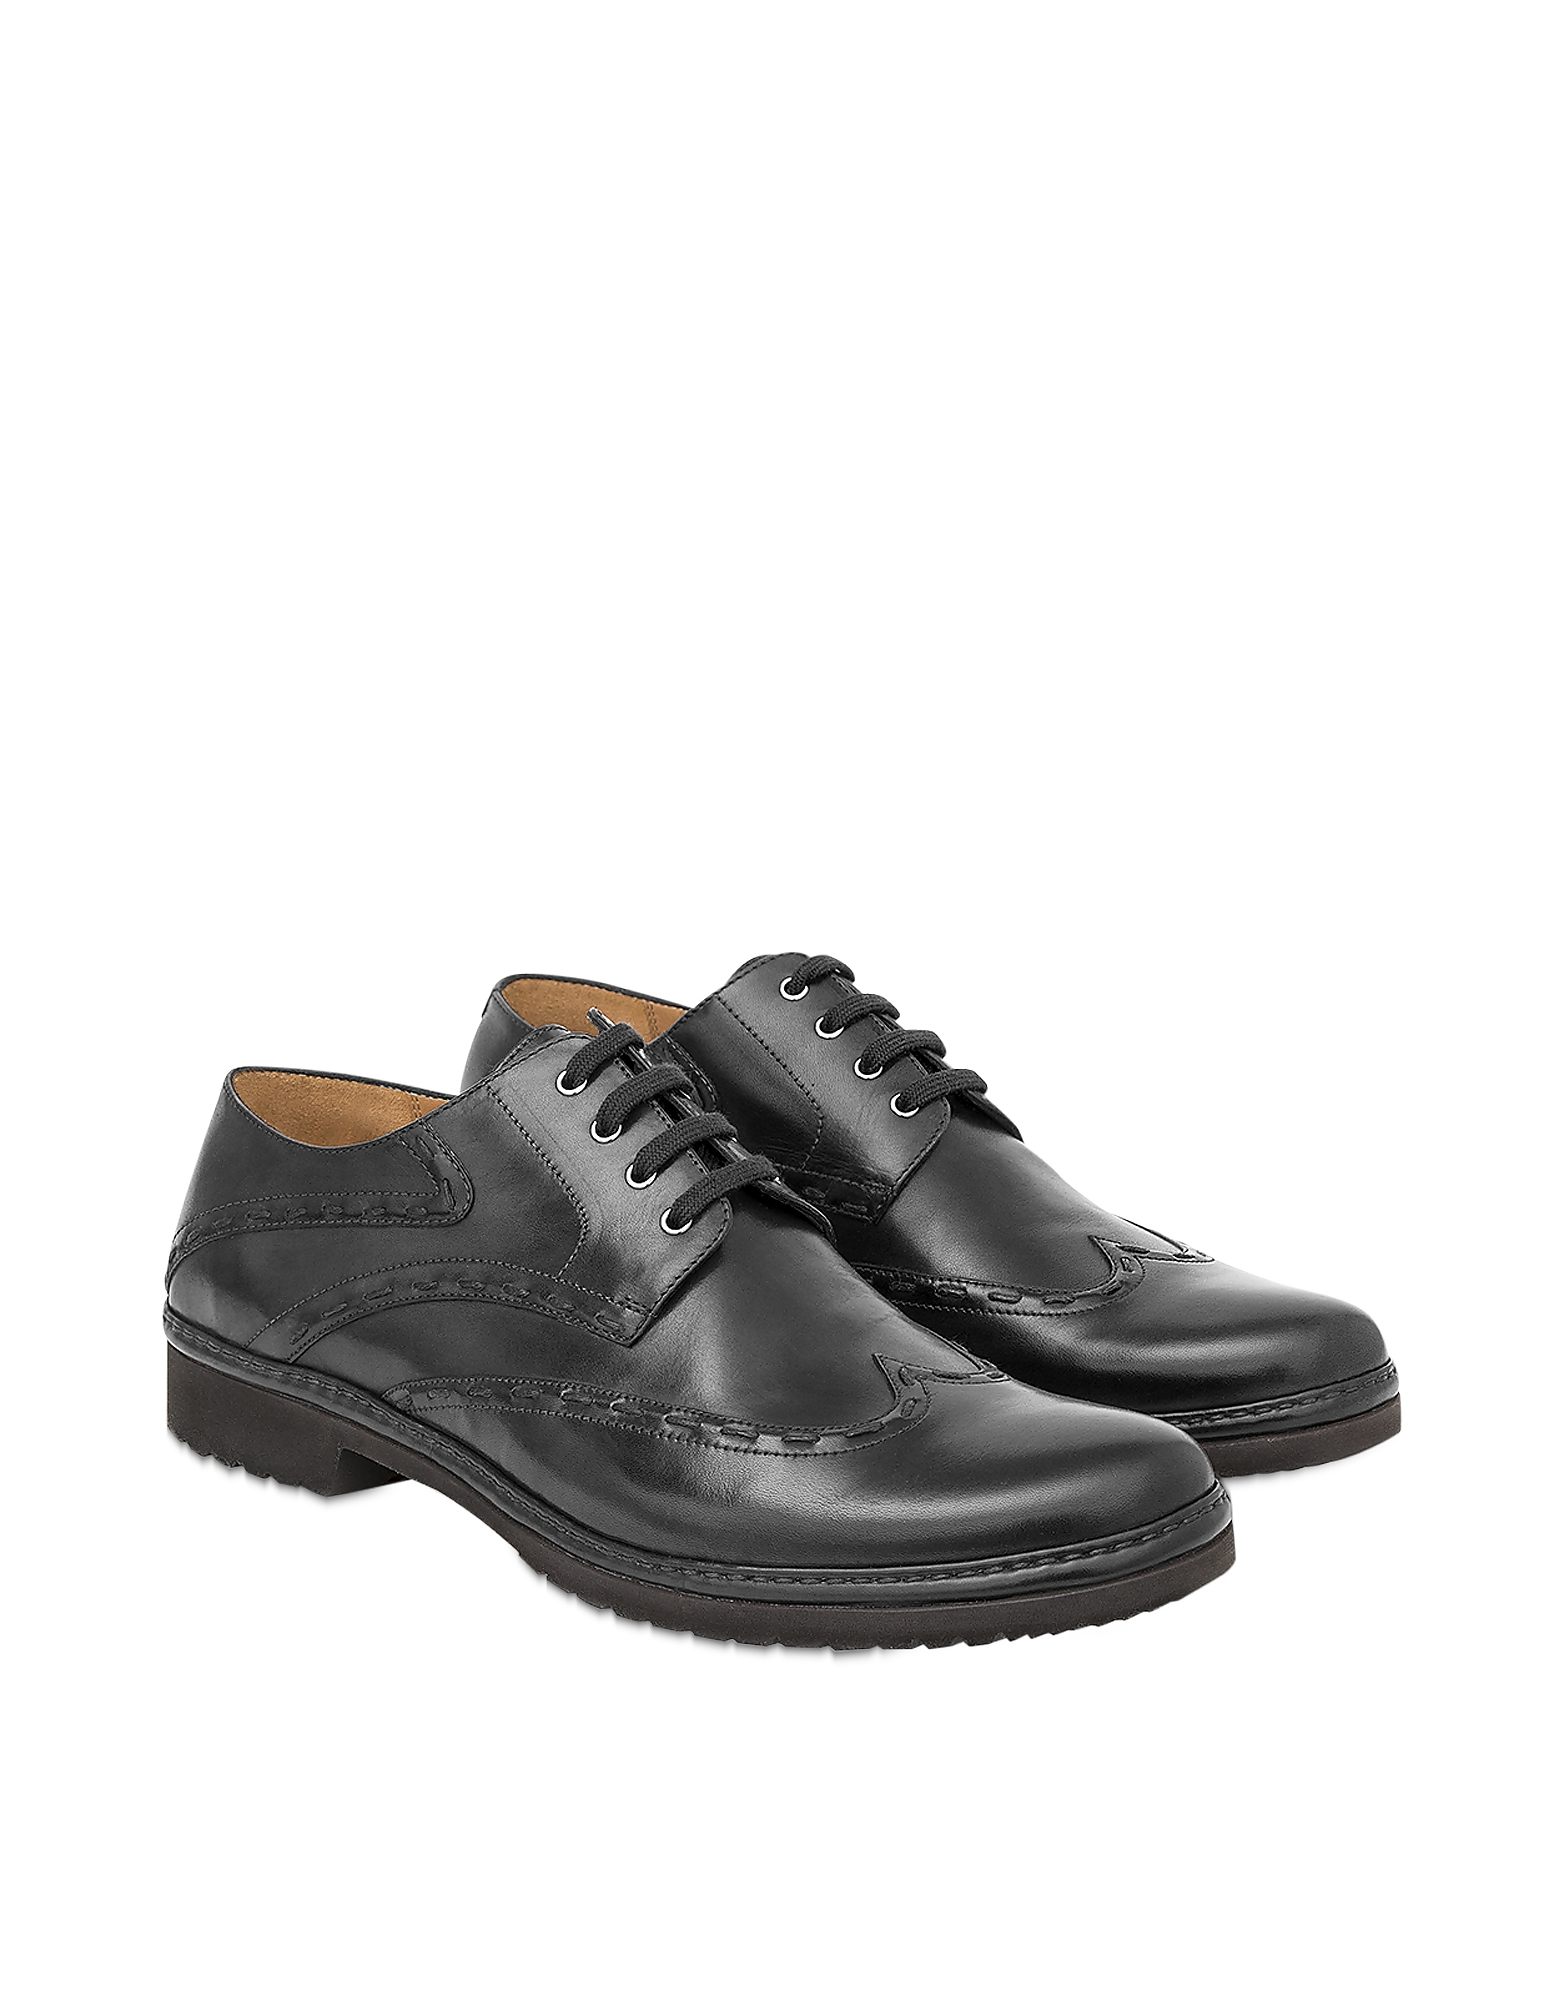 Pakerson Designer Shoes, Black Cortona Derby Shoes